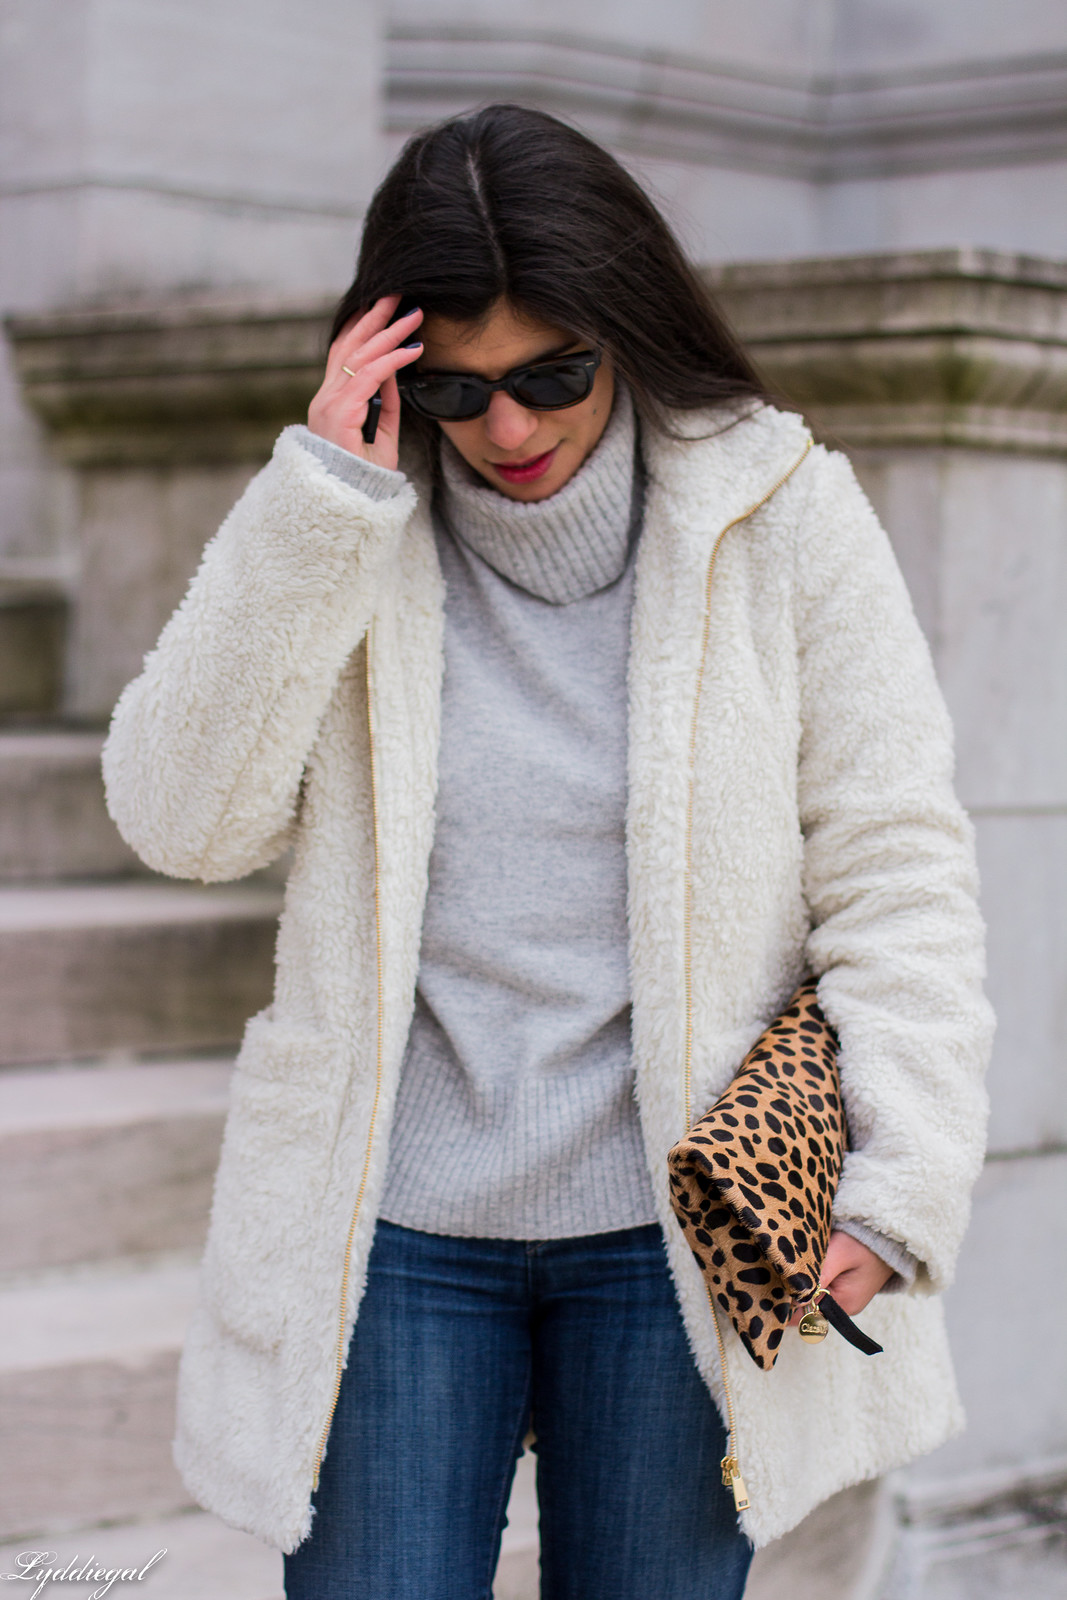 teddy coat, grey turtleneck sweater, black boots, leopard clutch-22.jpg